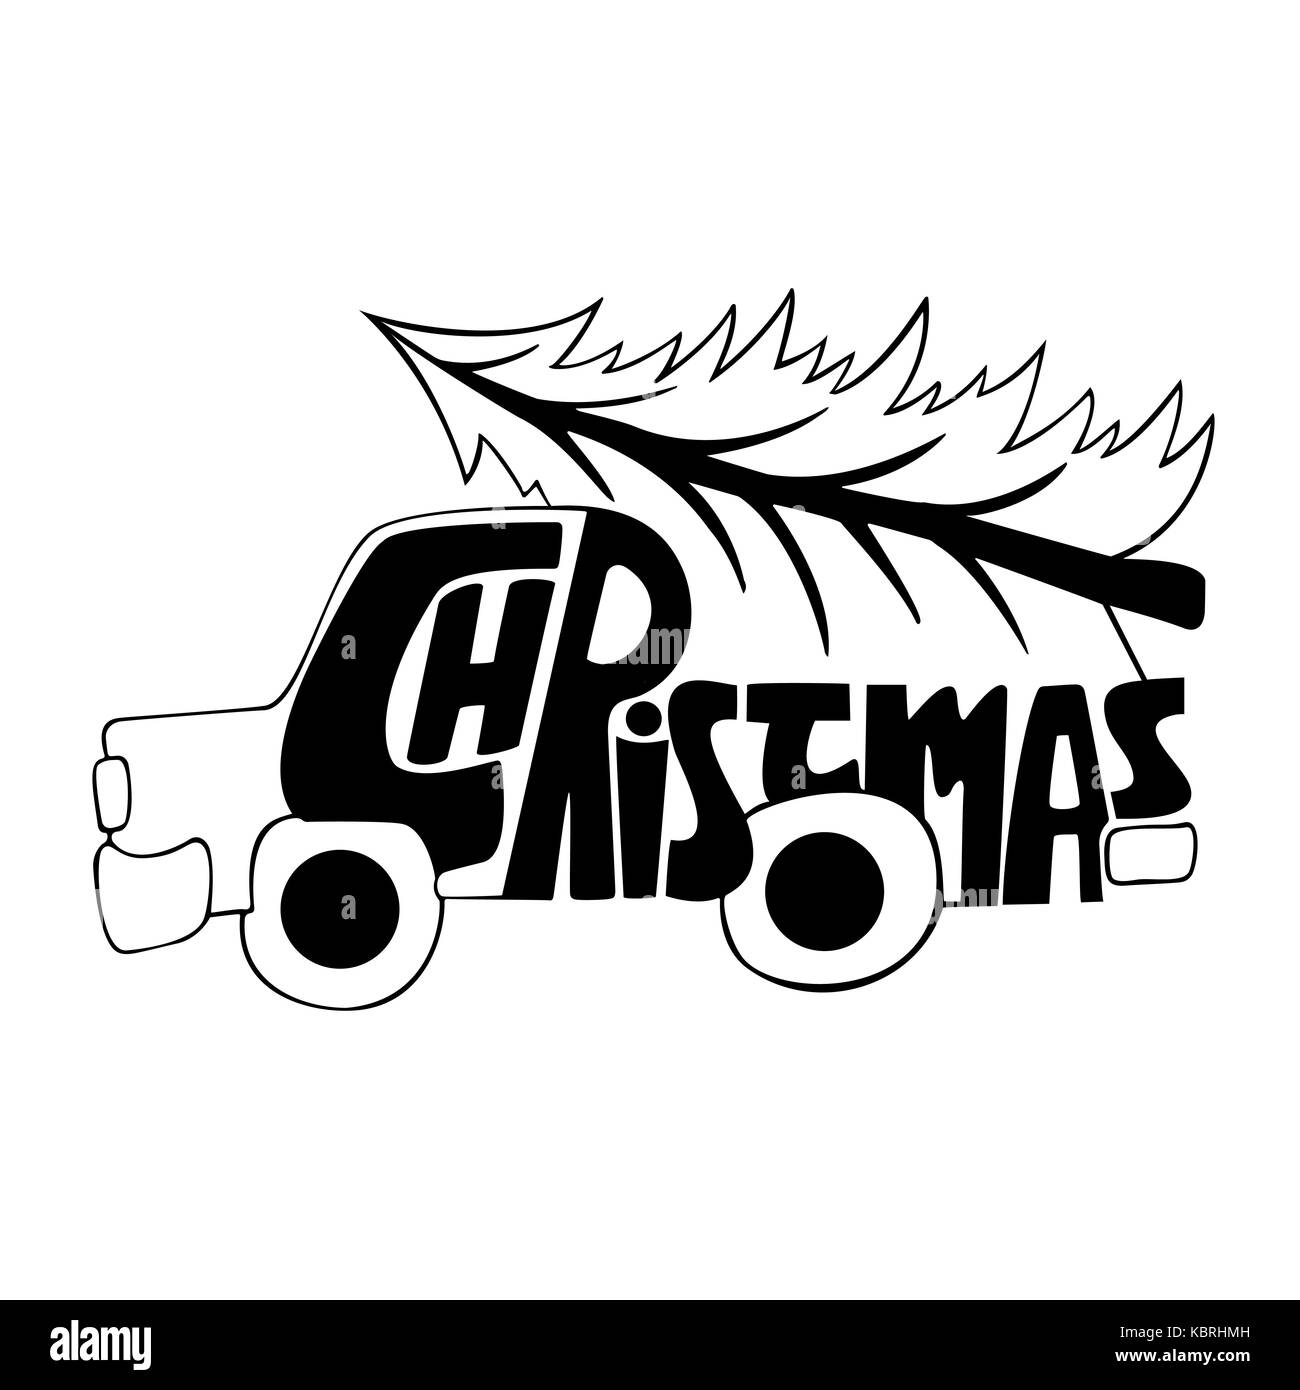 Car With A Christmas Tree Calligraphy Handwritten Modern Brush Lettering Handdrawn Inspiration Typography Poster